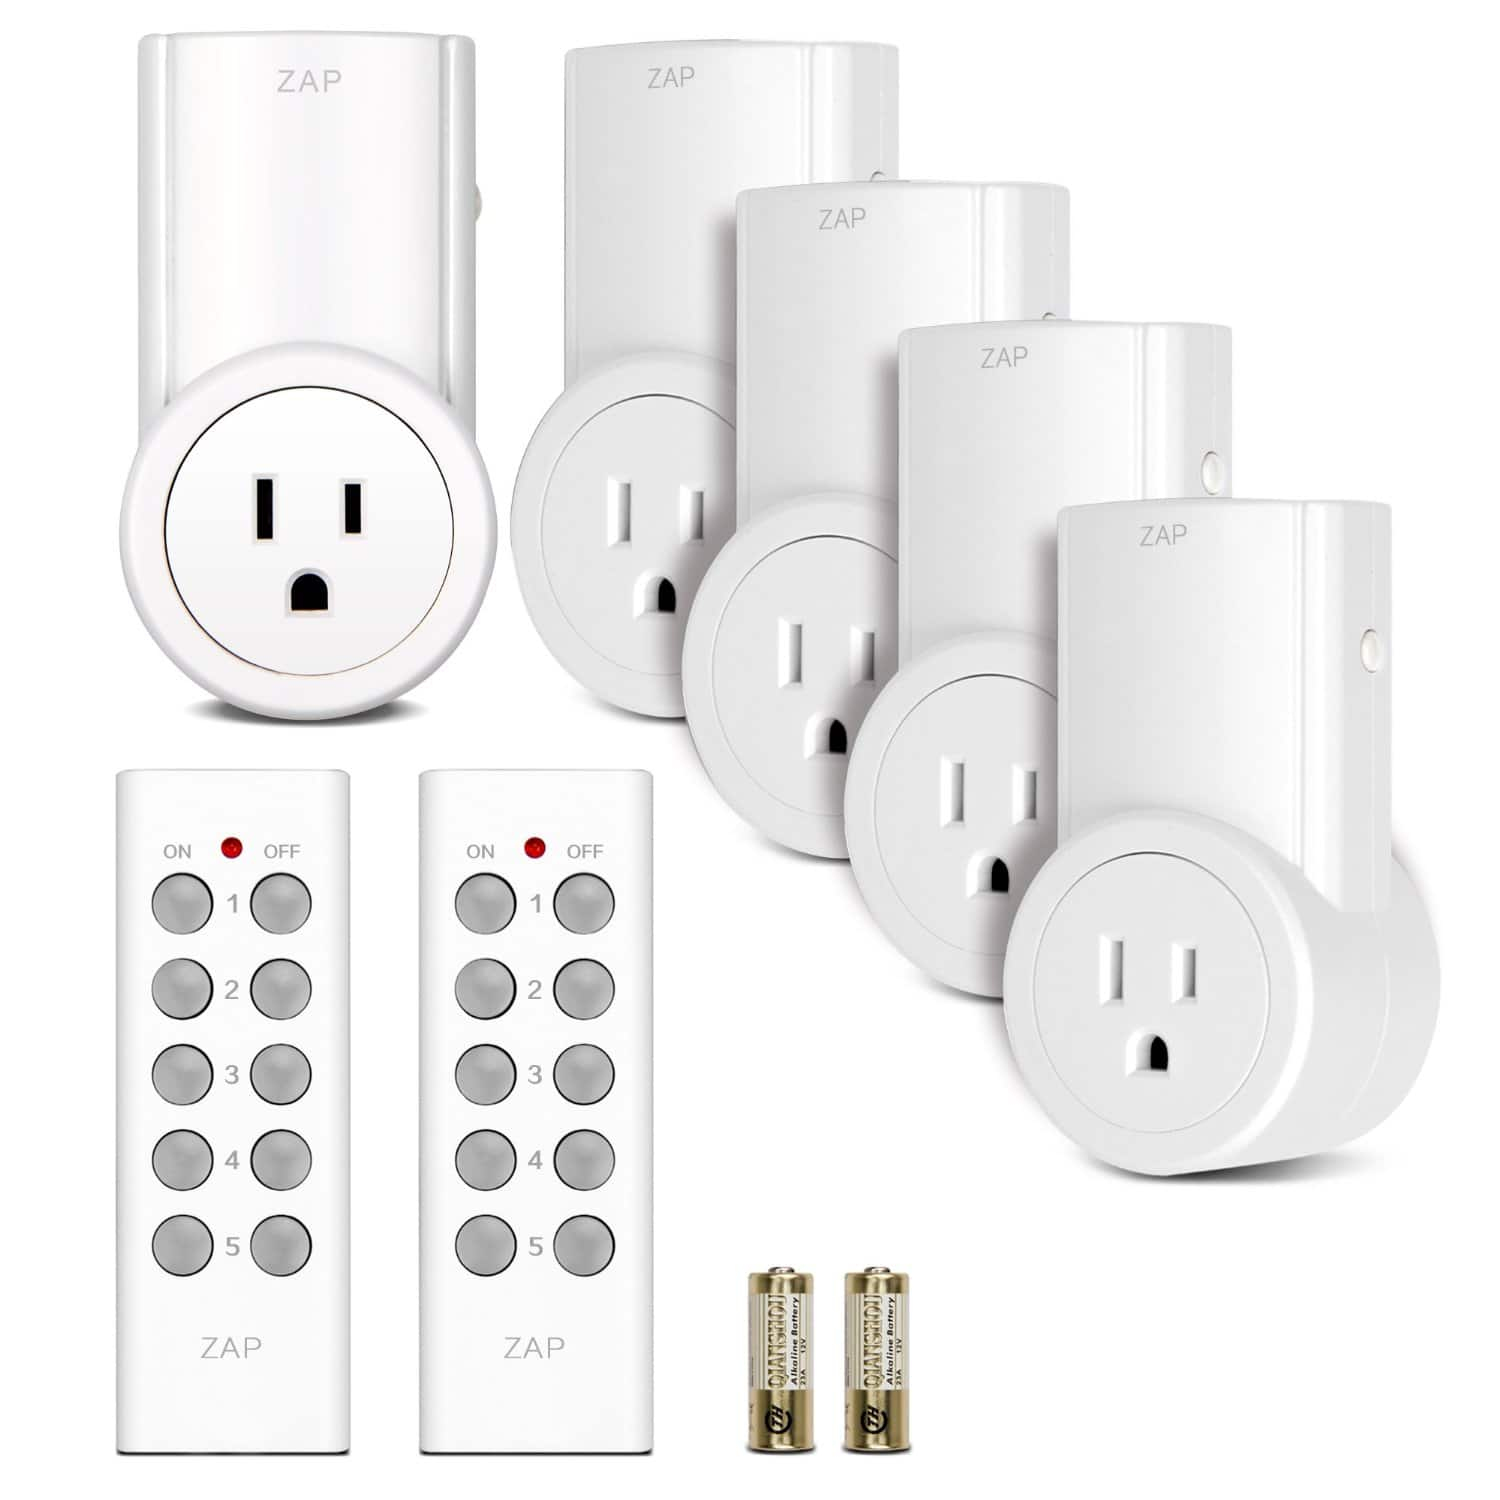 5-Pack Etekcity Wireless Outlet Light Switch w/ 2 Remotes  $21.50